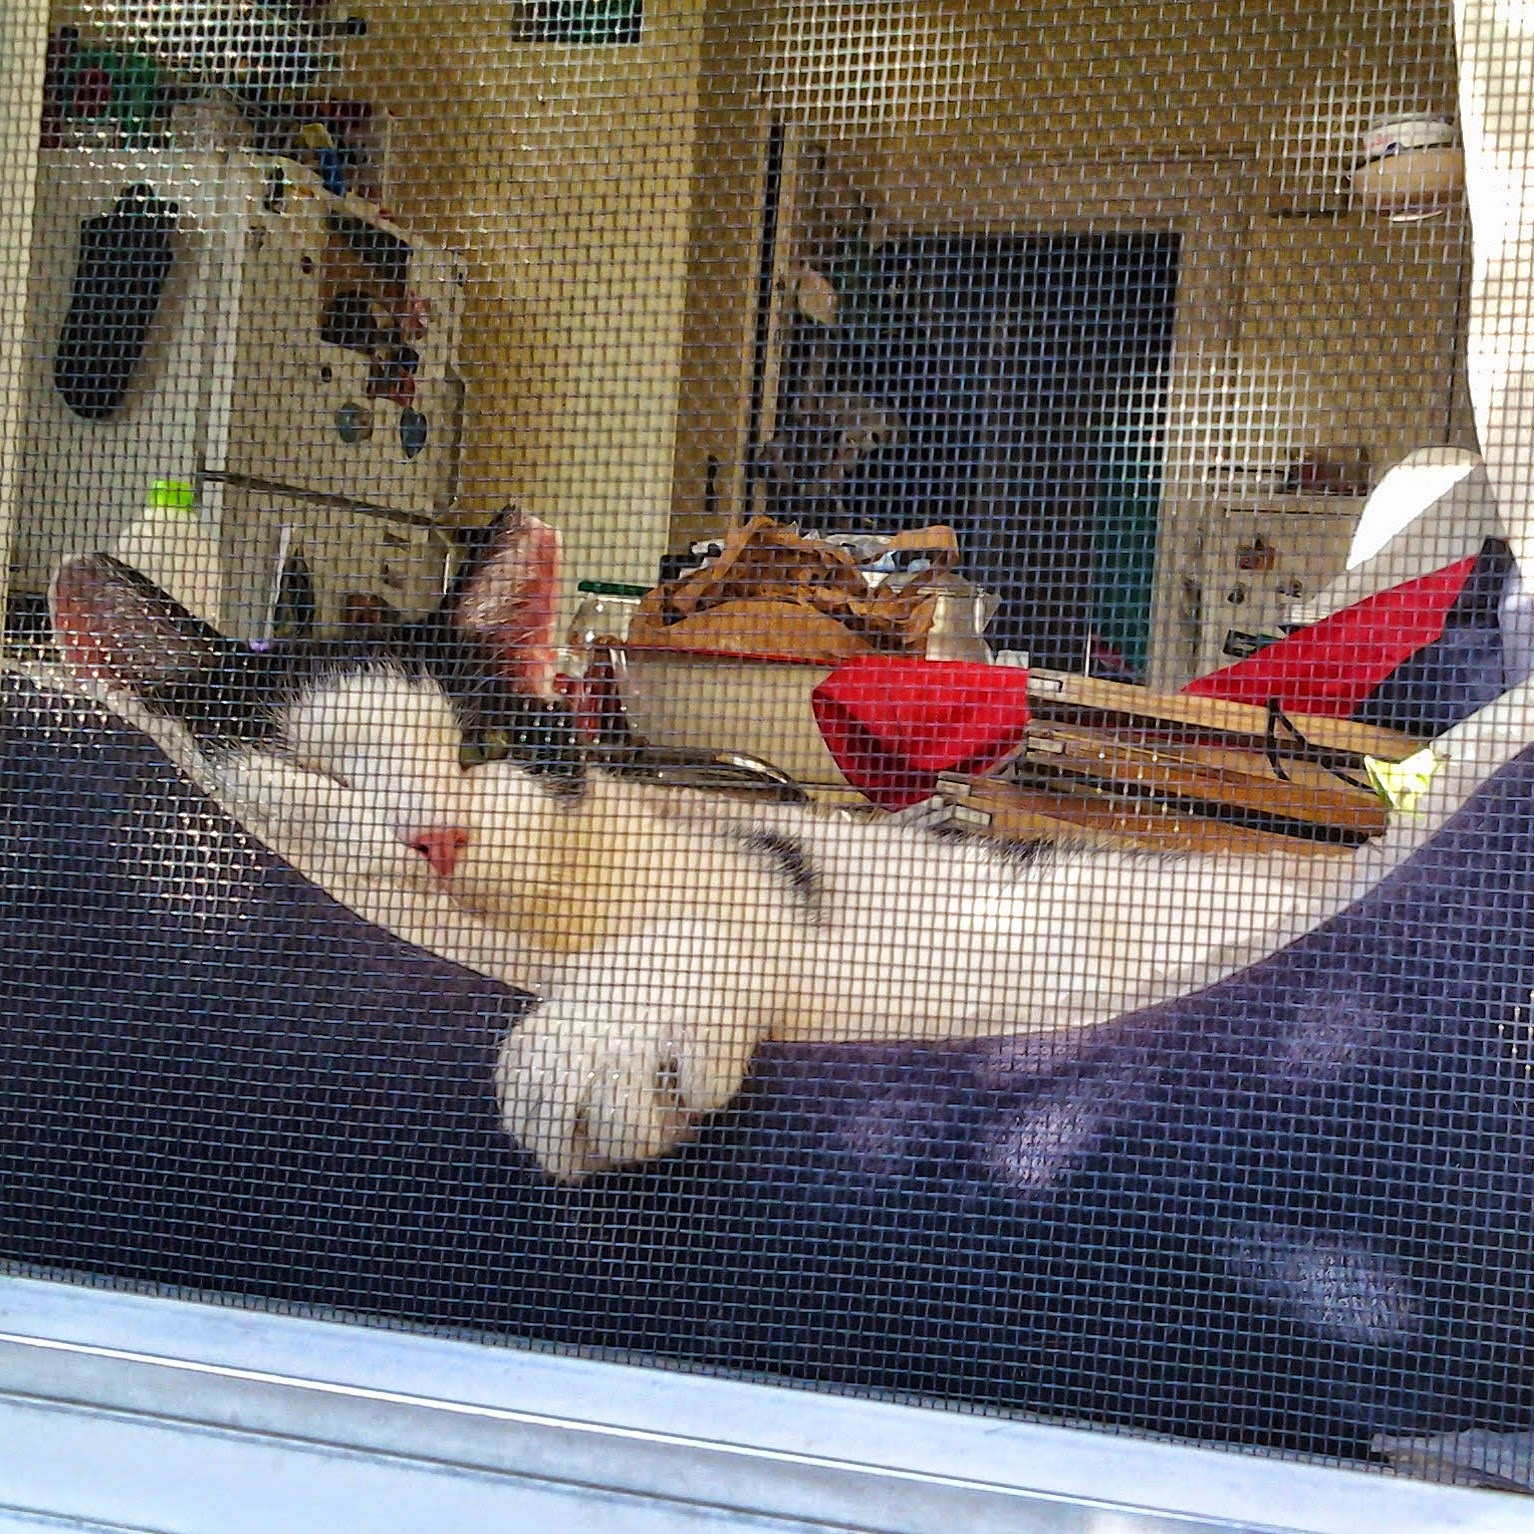 Eddie in window